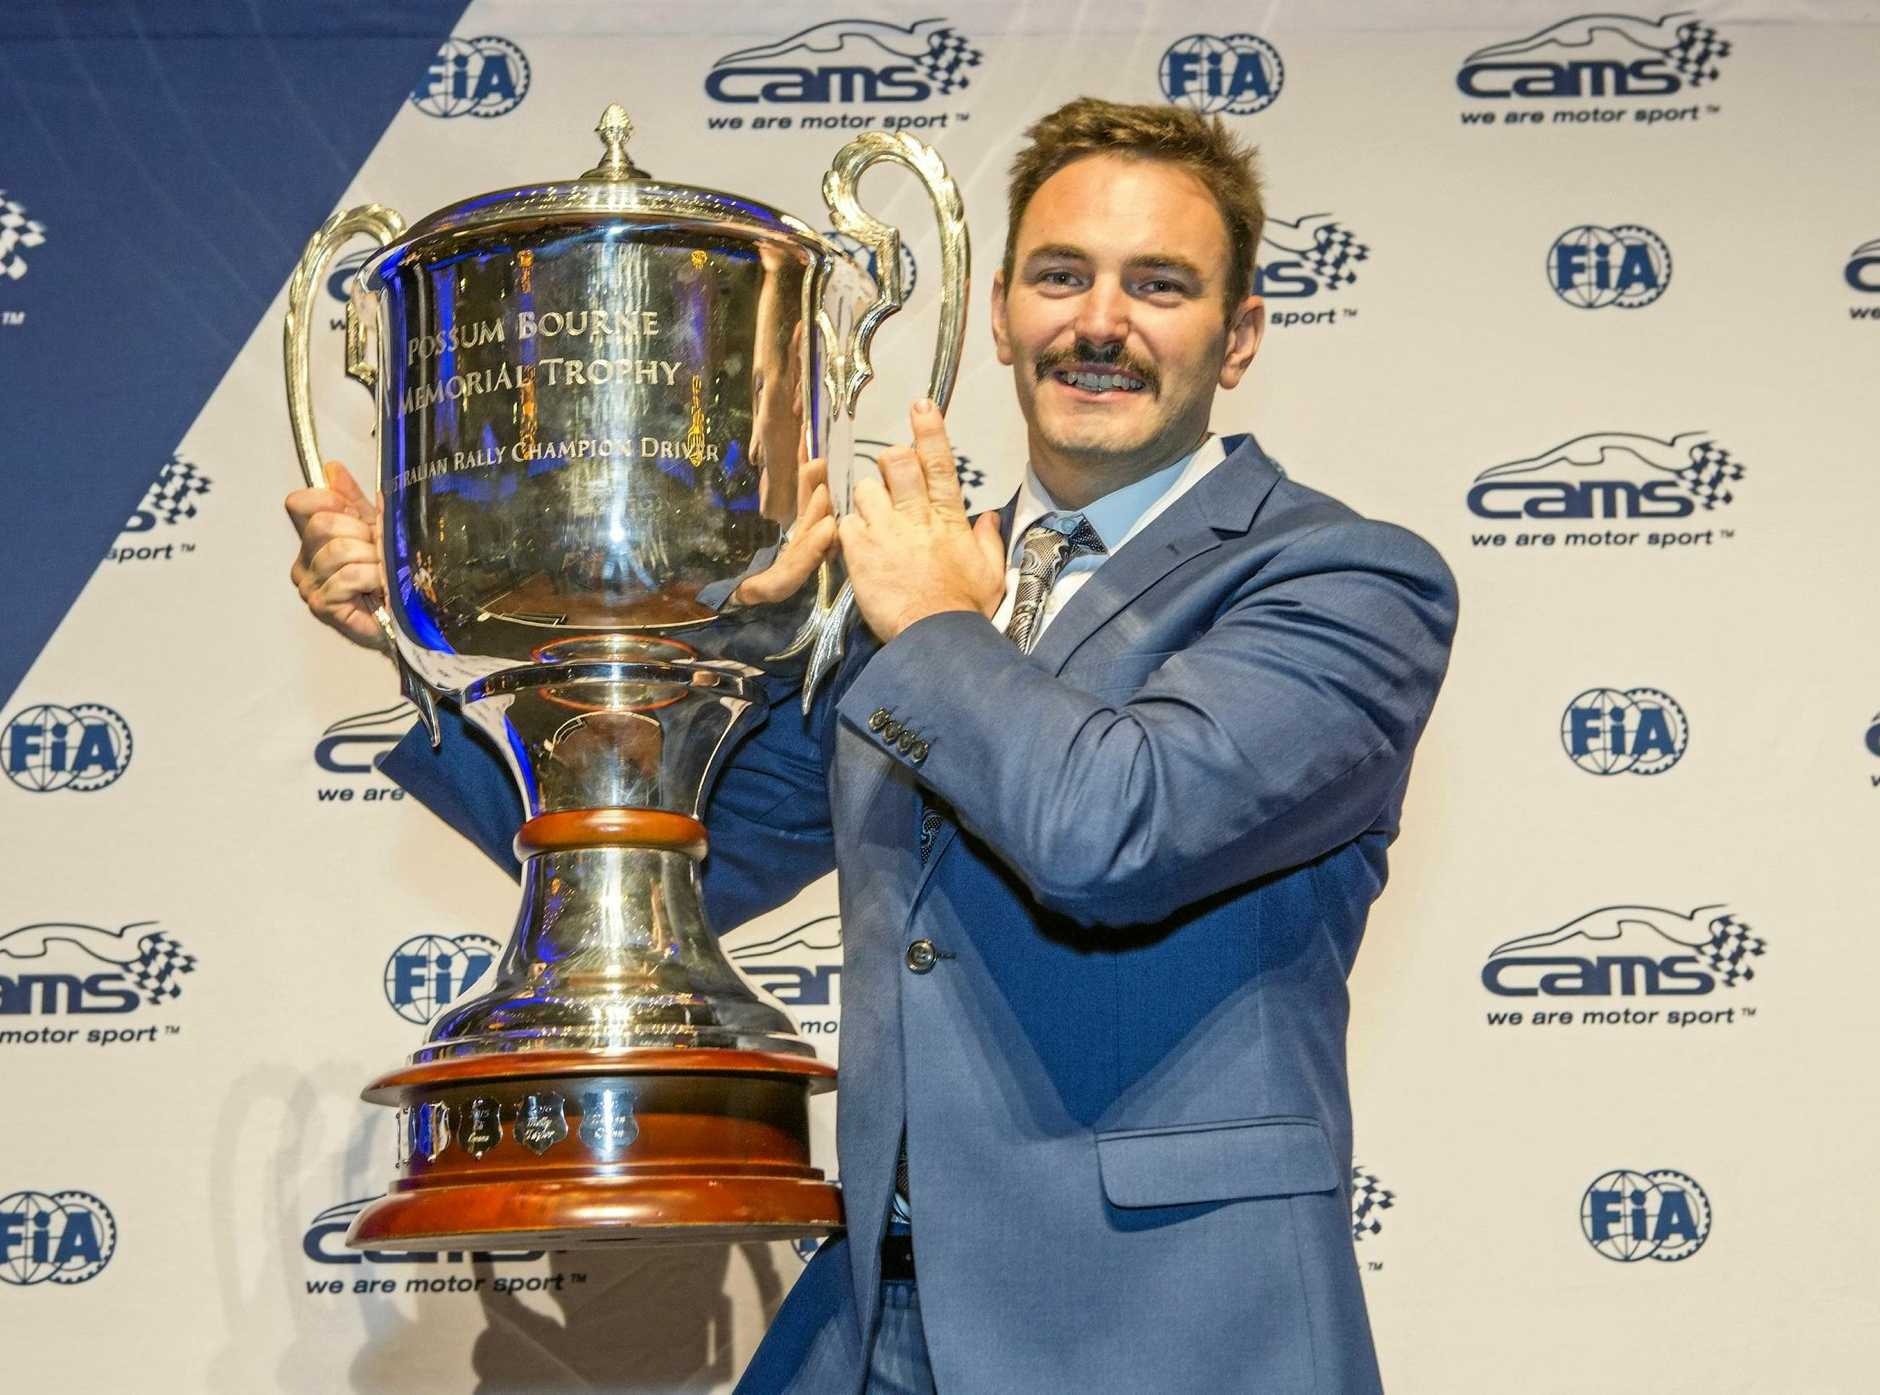 Coffs Harbour rally driver Nathan Quinn with the Possum Bourne memorial Trophy he won for being the Australian Rally Championships champion driver for 2017. Photo: Mark Teague Photography.